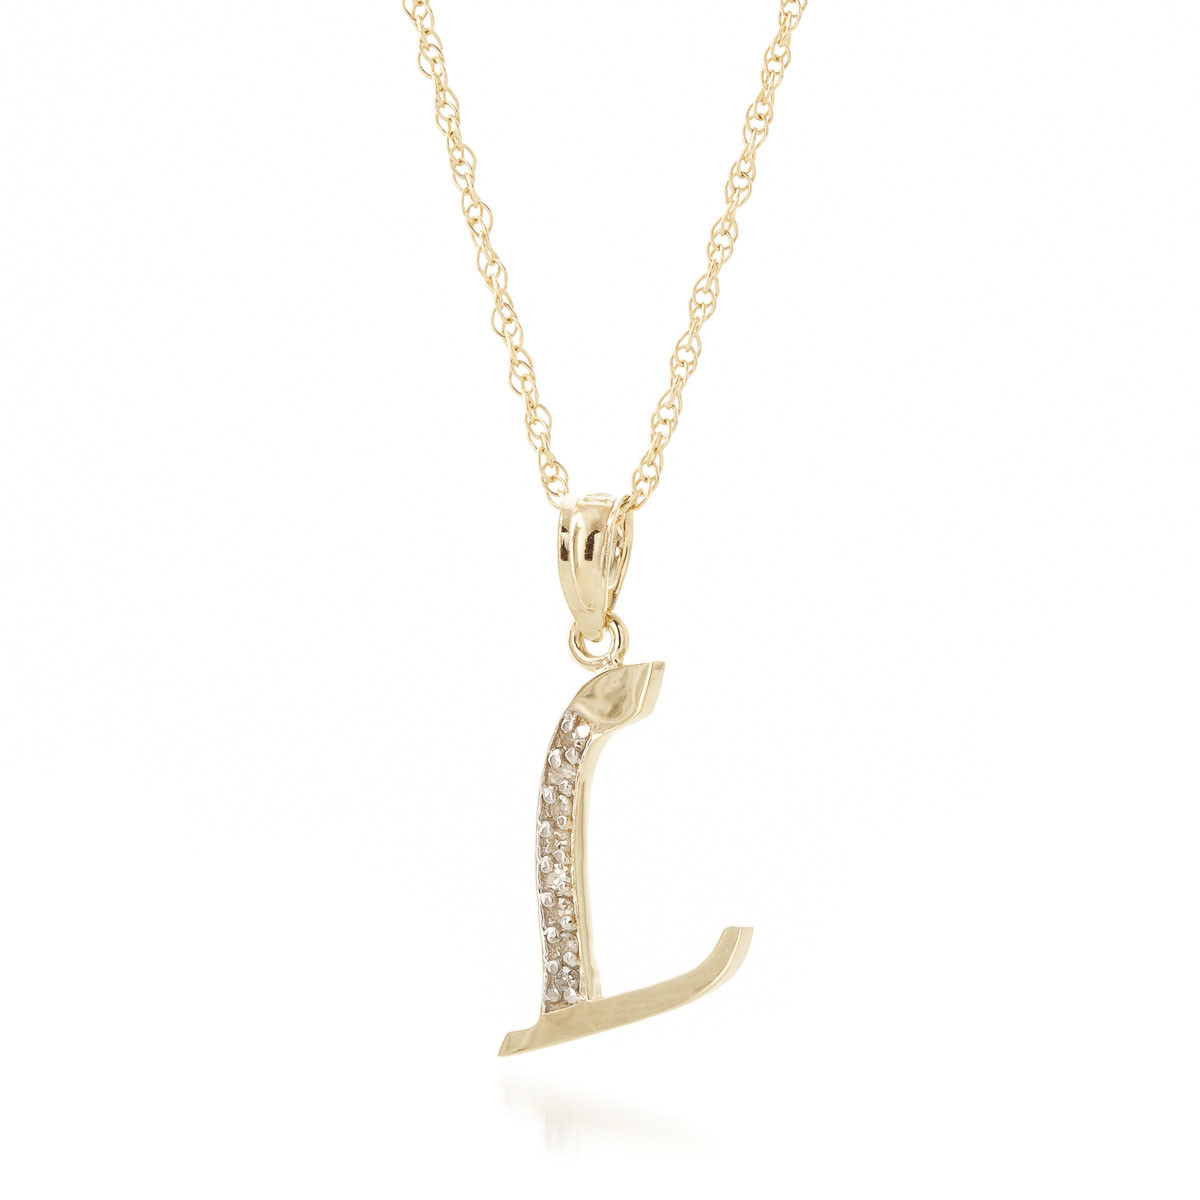 ee4cb7dd1235b Diamond Letter Initial L Pendant Necklace in 9ct Gold